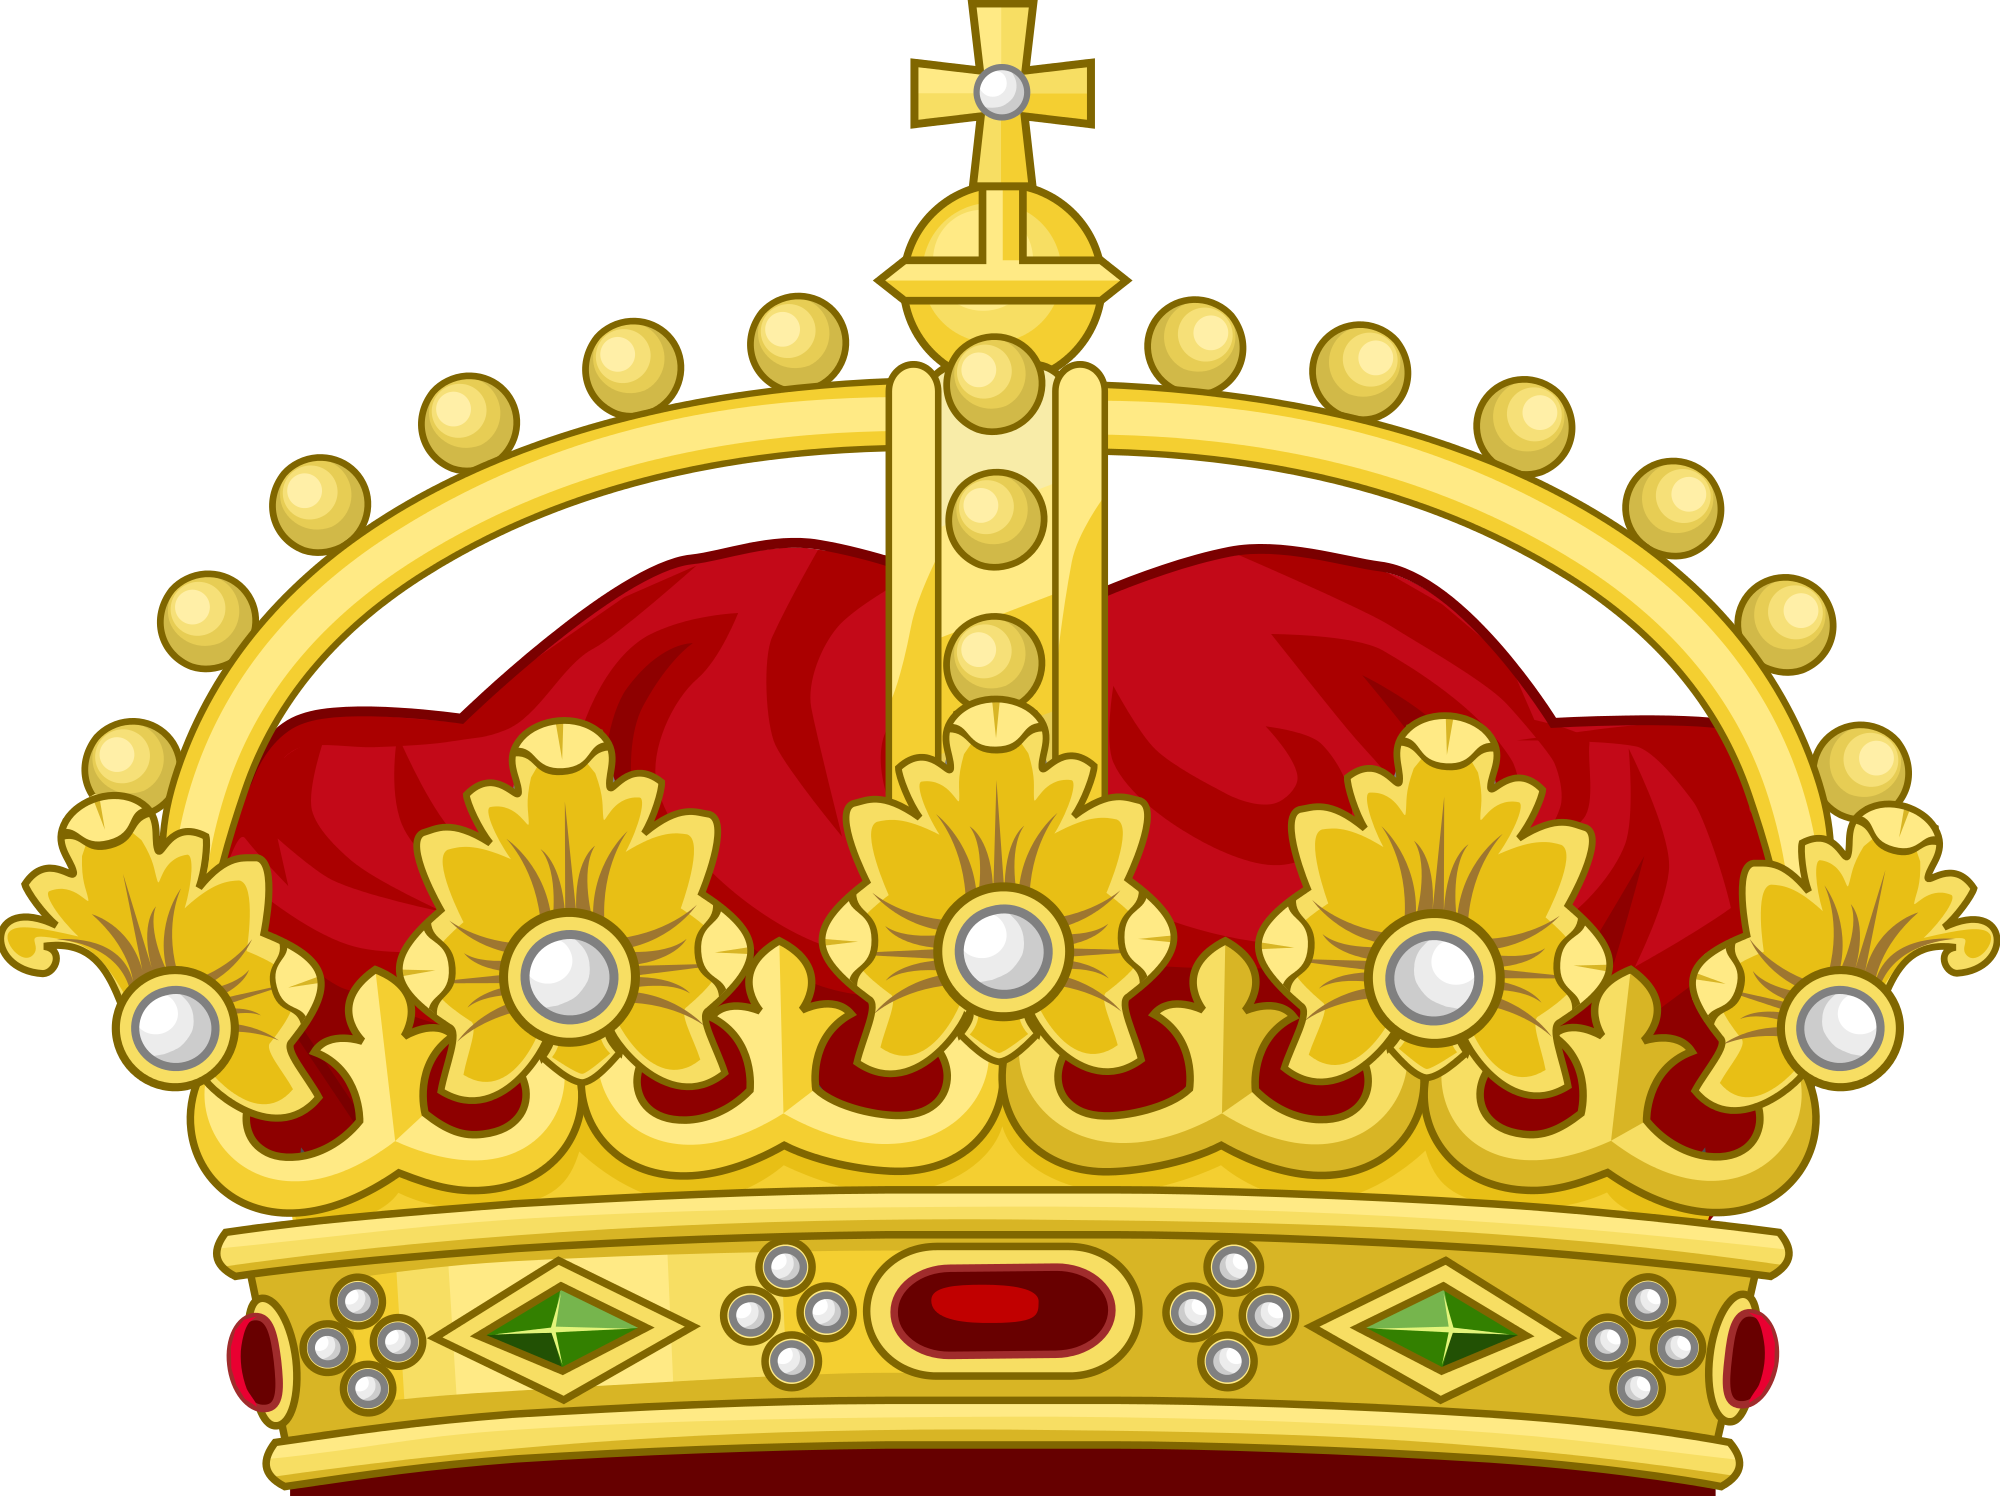 Cartoon crown png. Gold and red with